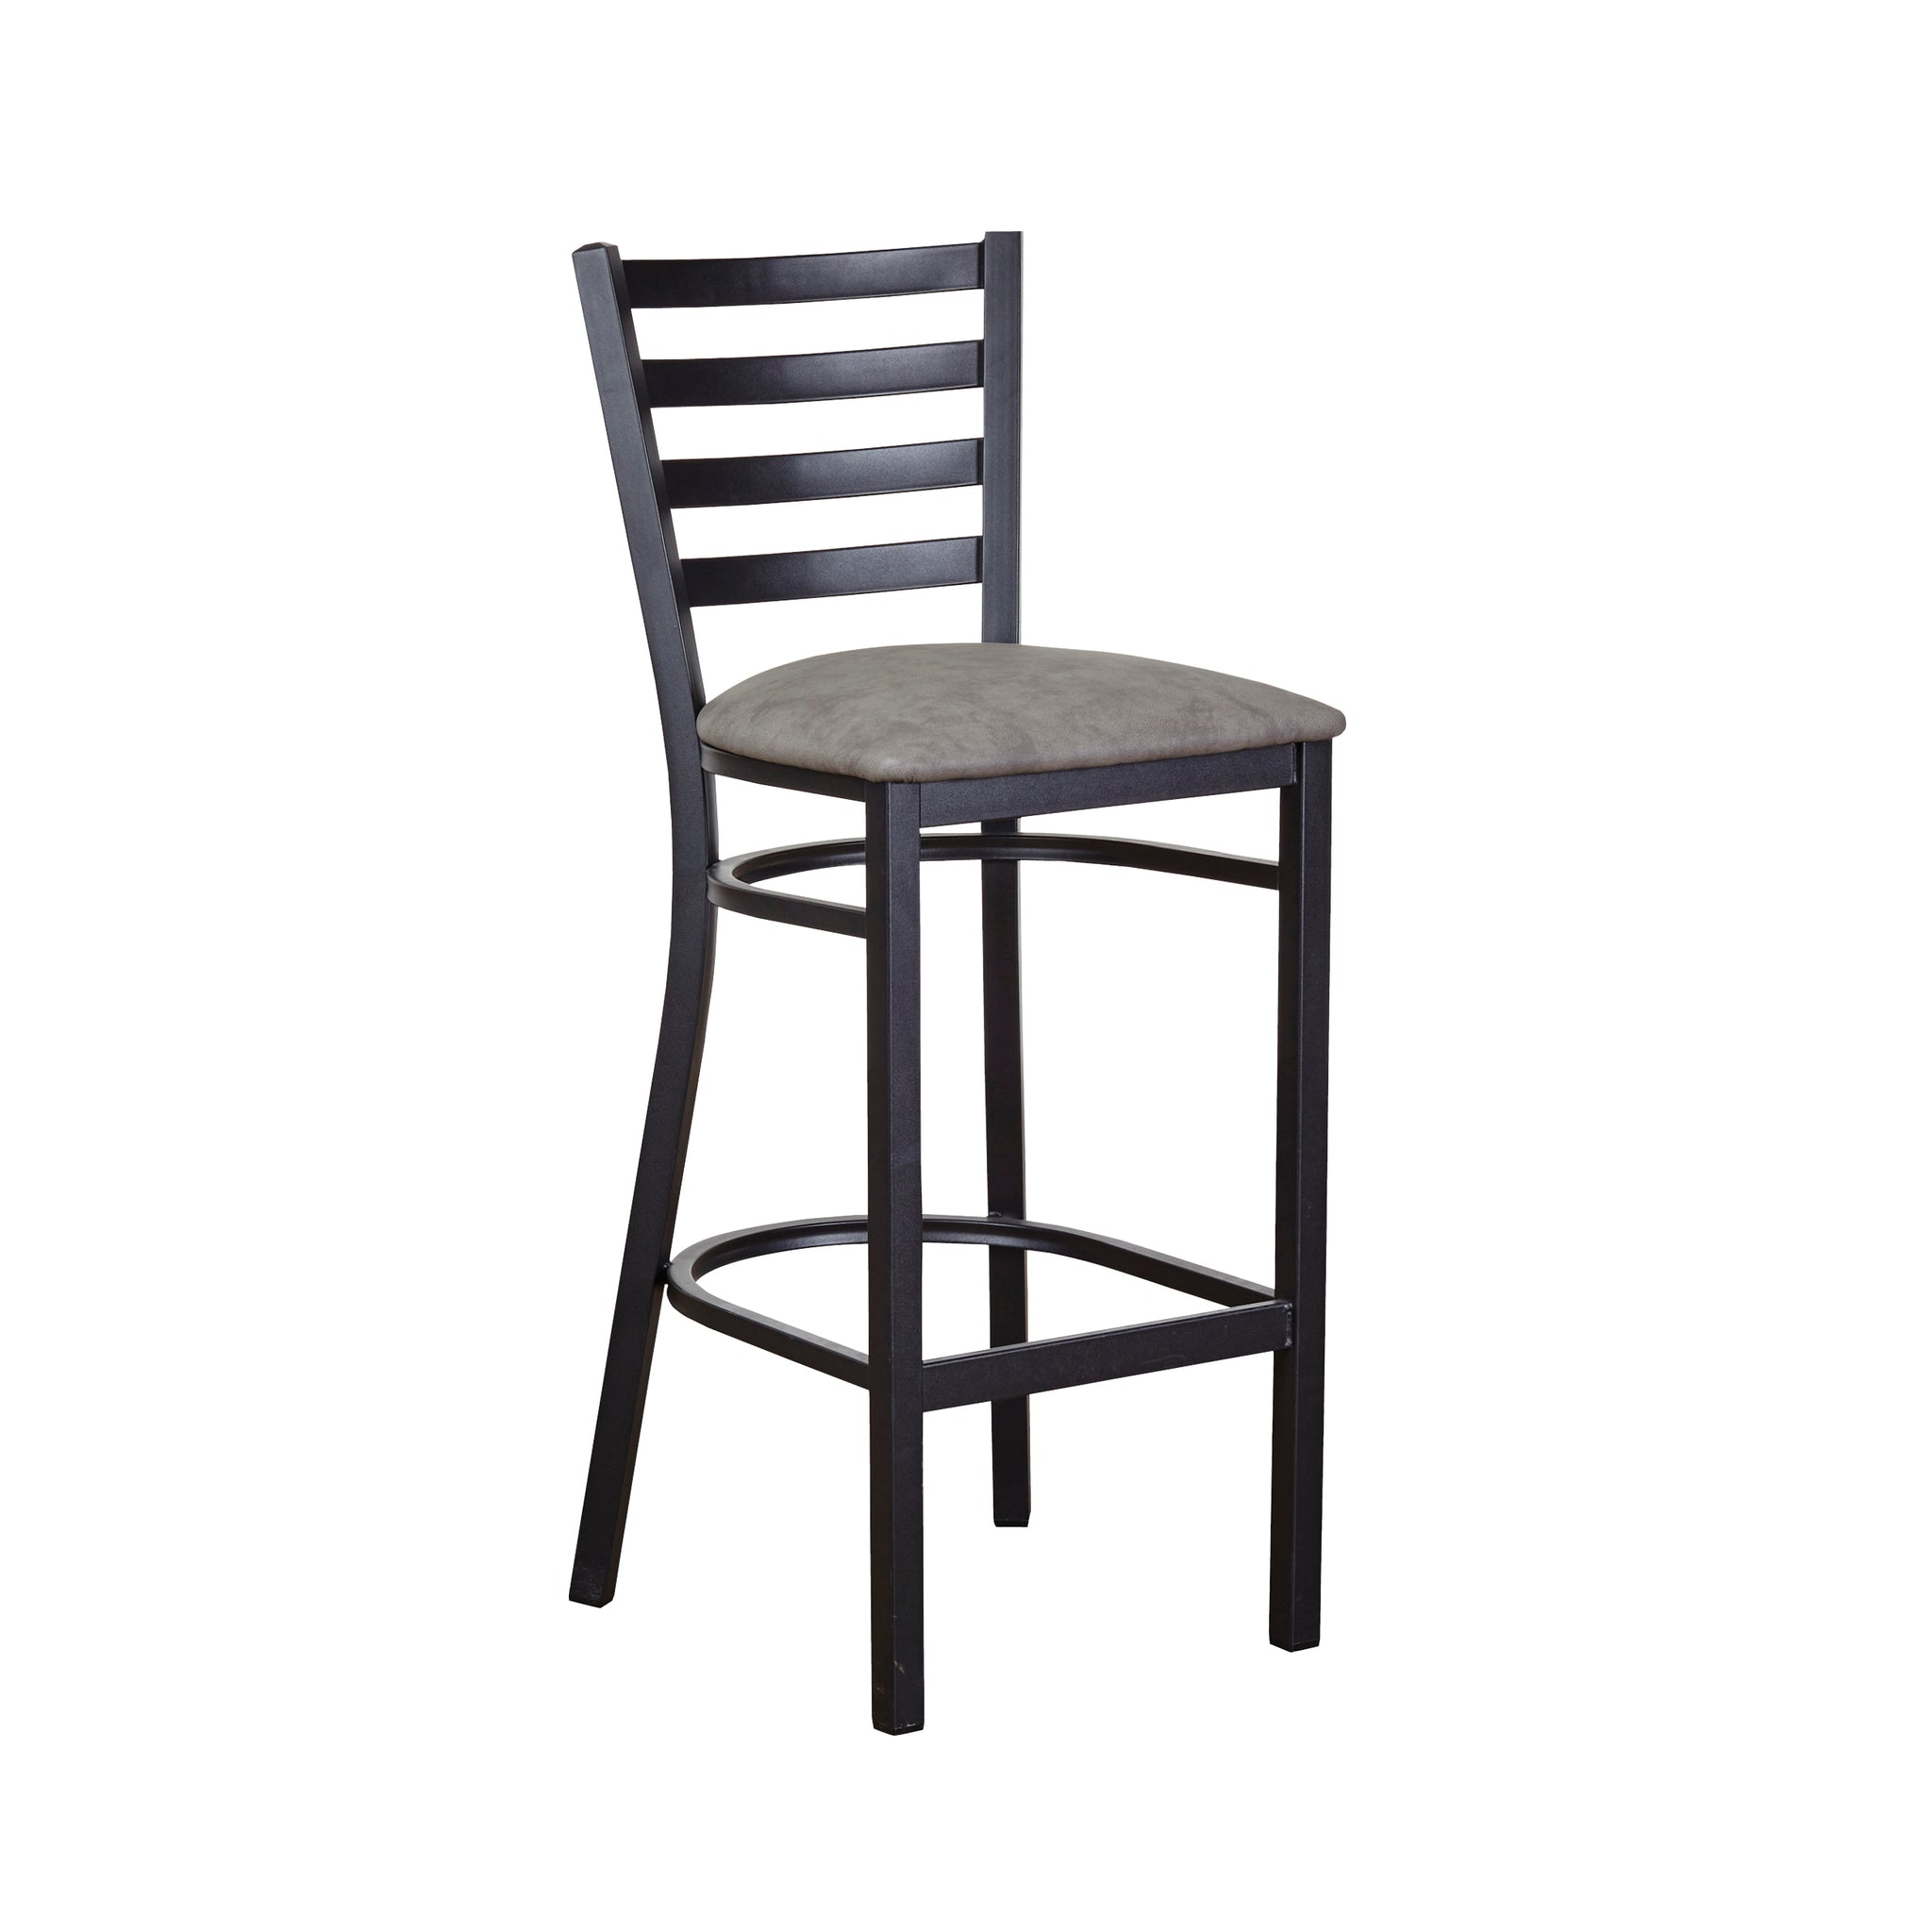 Hedcor Latina restaurant bar chair